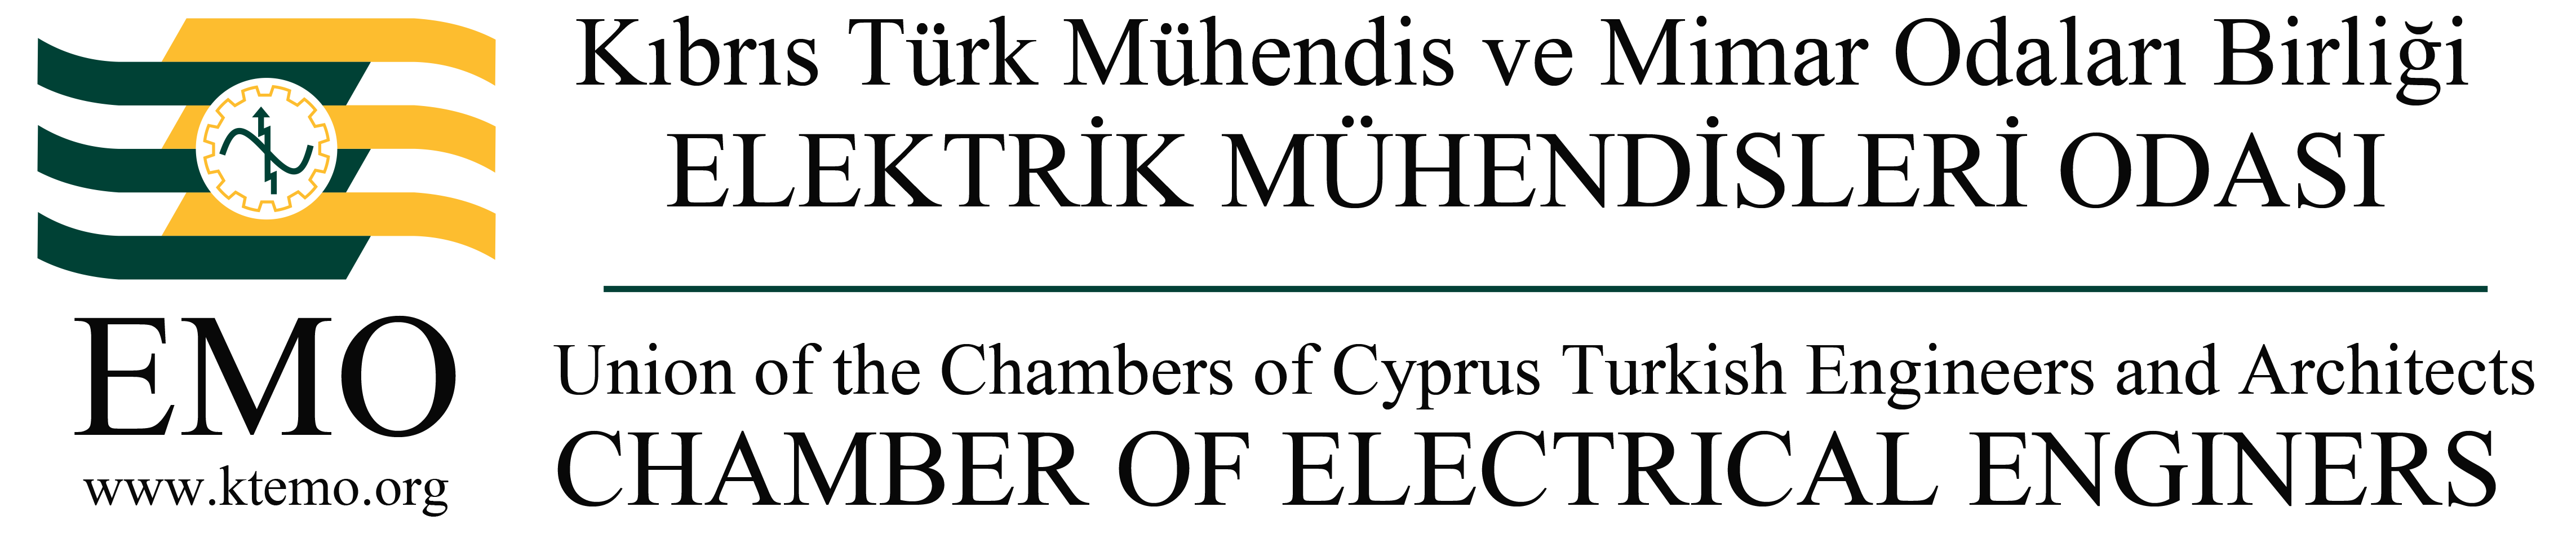 Chamber Of Electrical Engineers (logo)